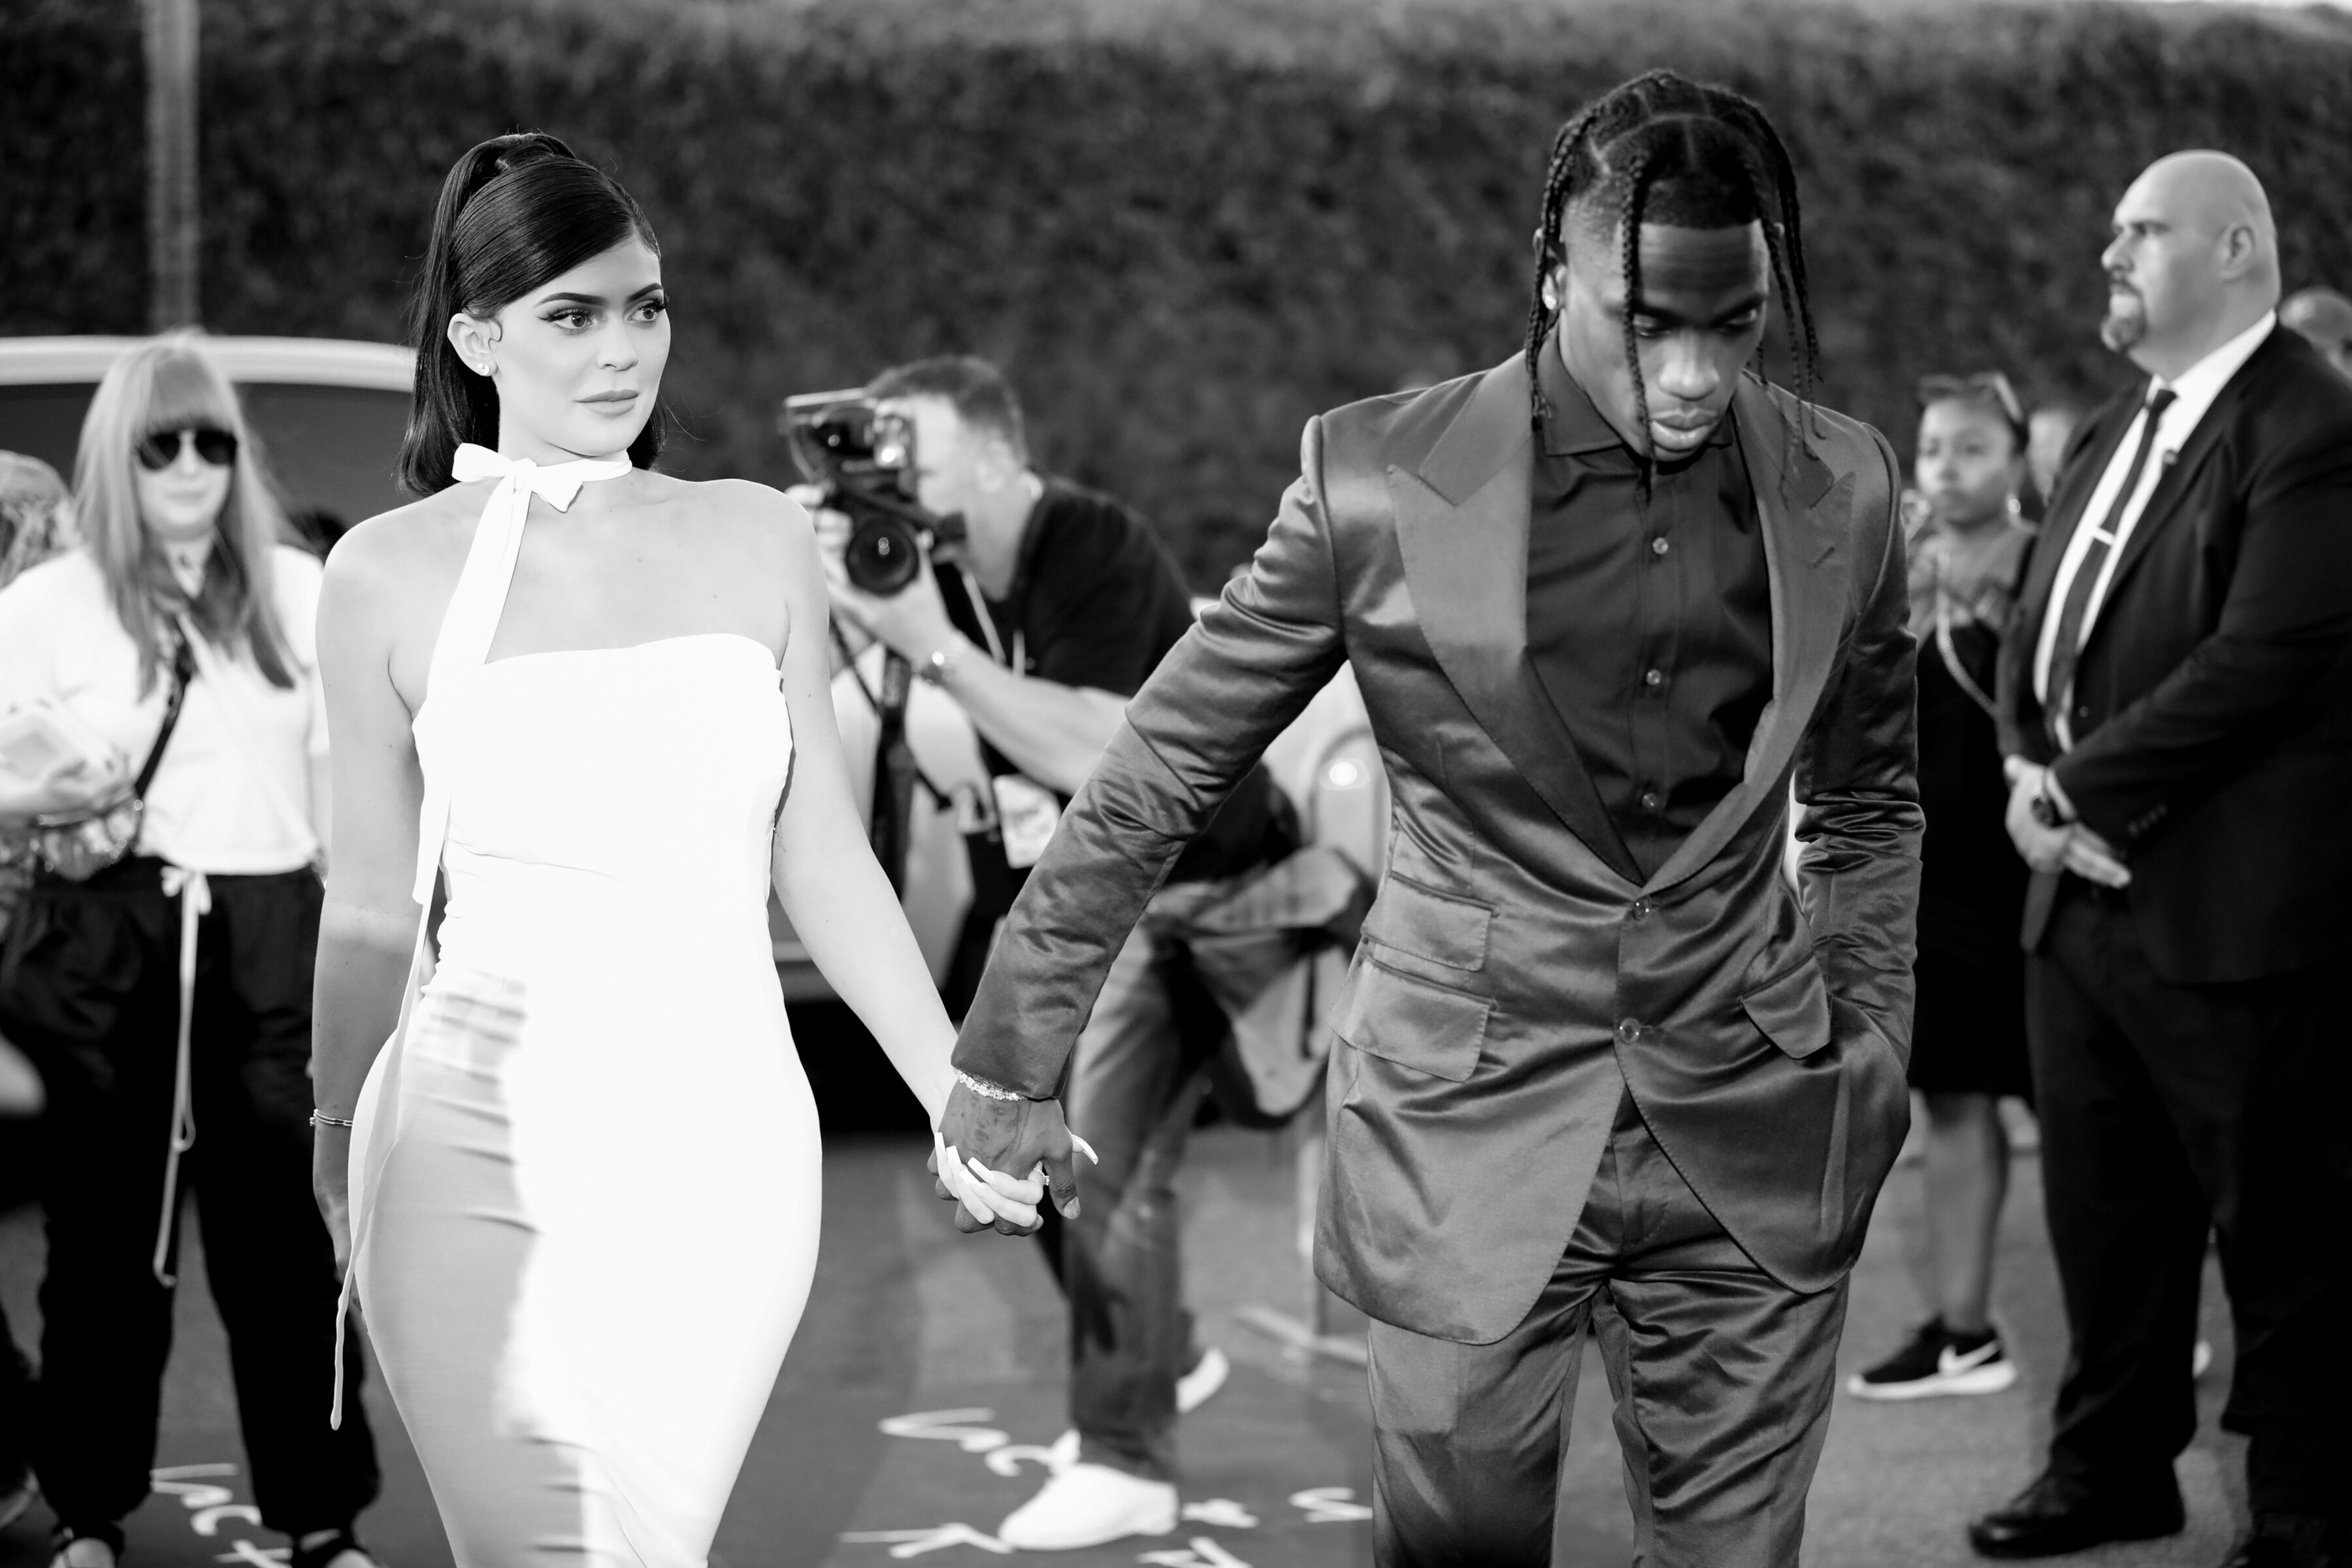 """Kylie Jenner and Travis Scott in the Netflix premiere of """"Travis Scott: Look Mom I Can Fly"""" 